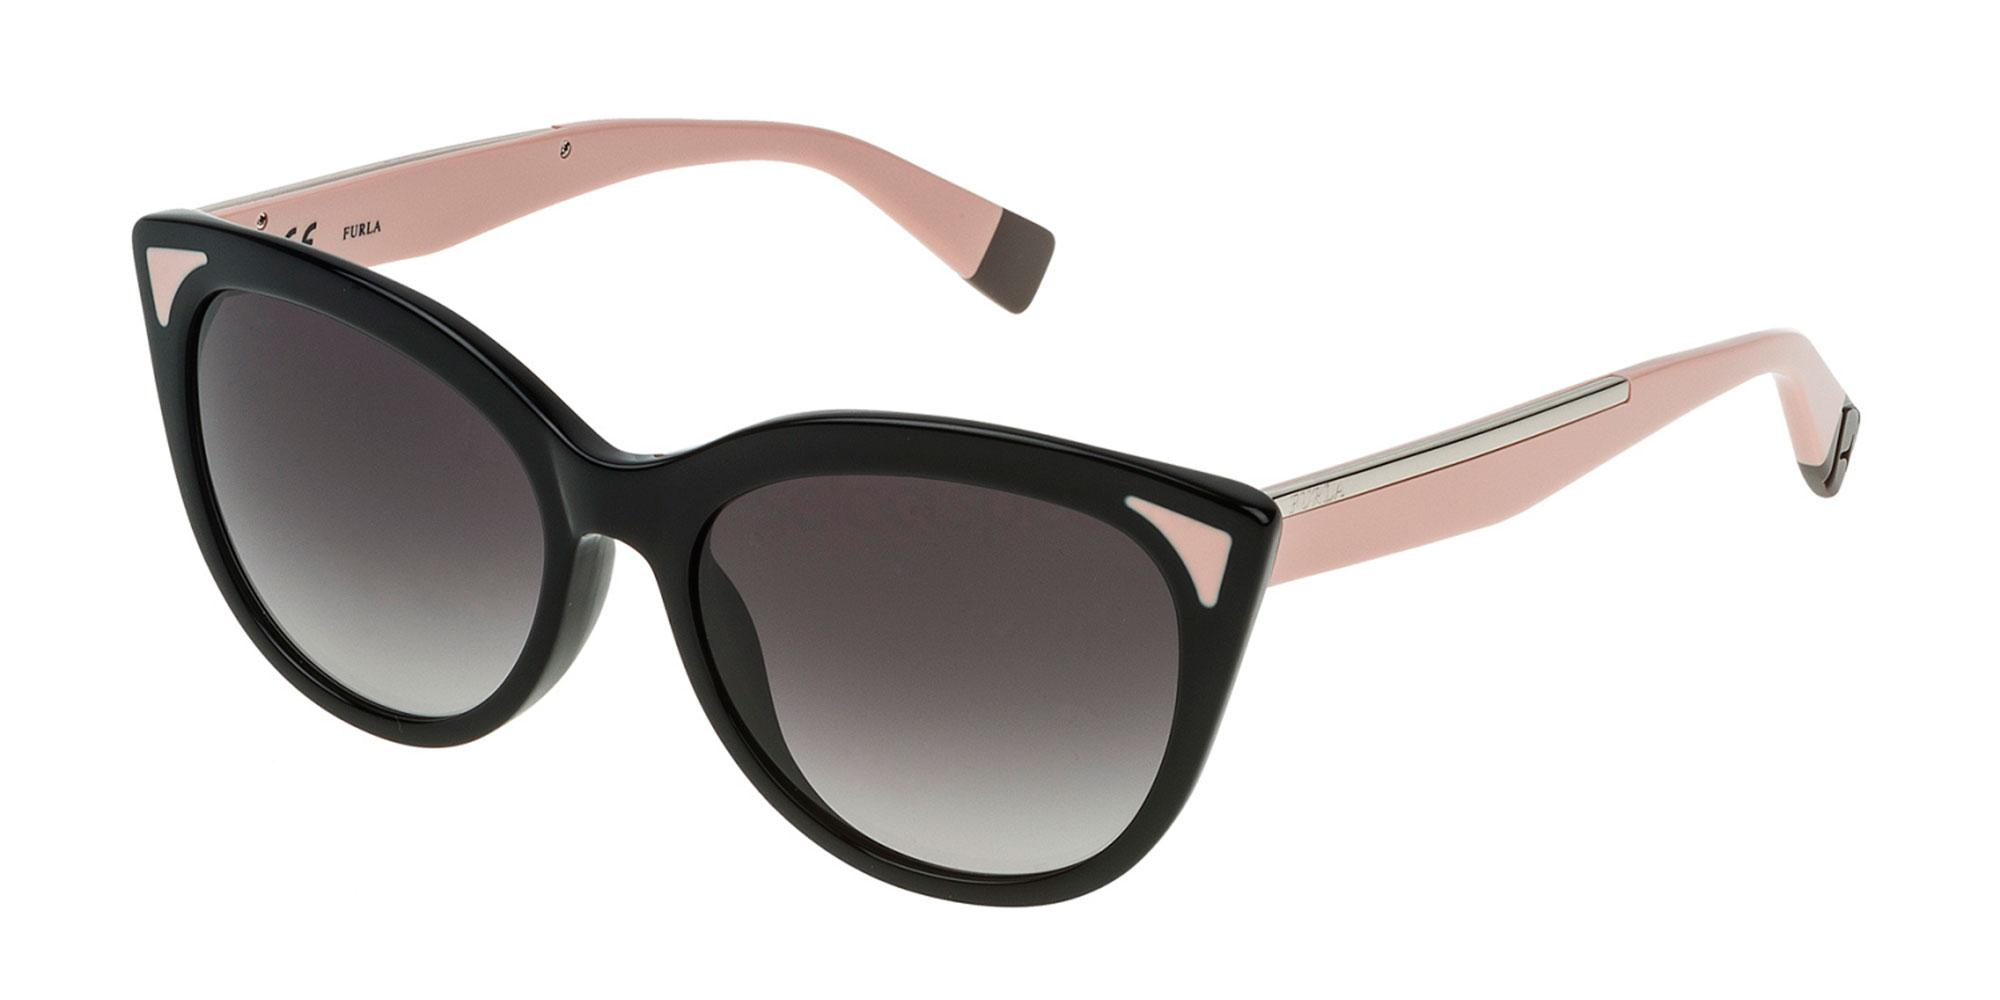 0700 SU4979 Sunglasses, Furla